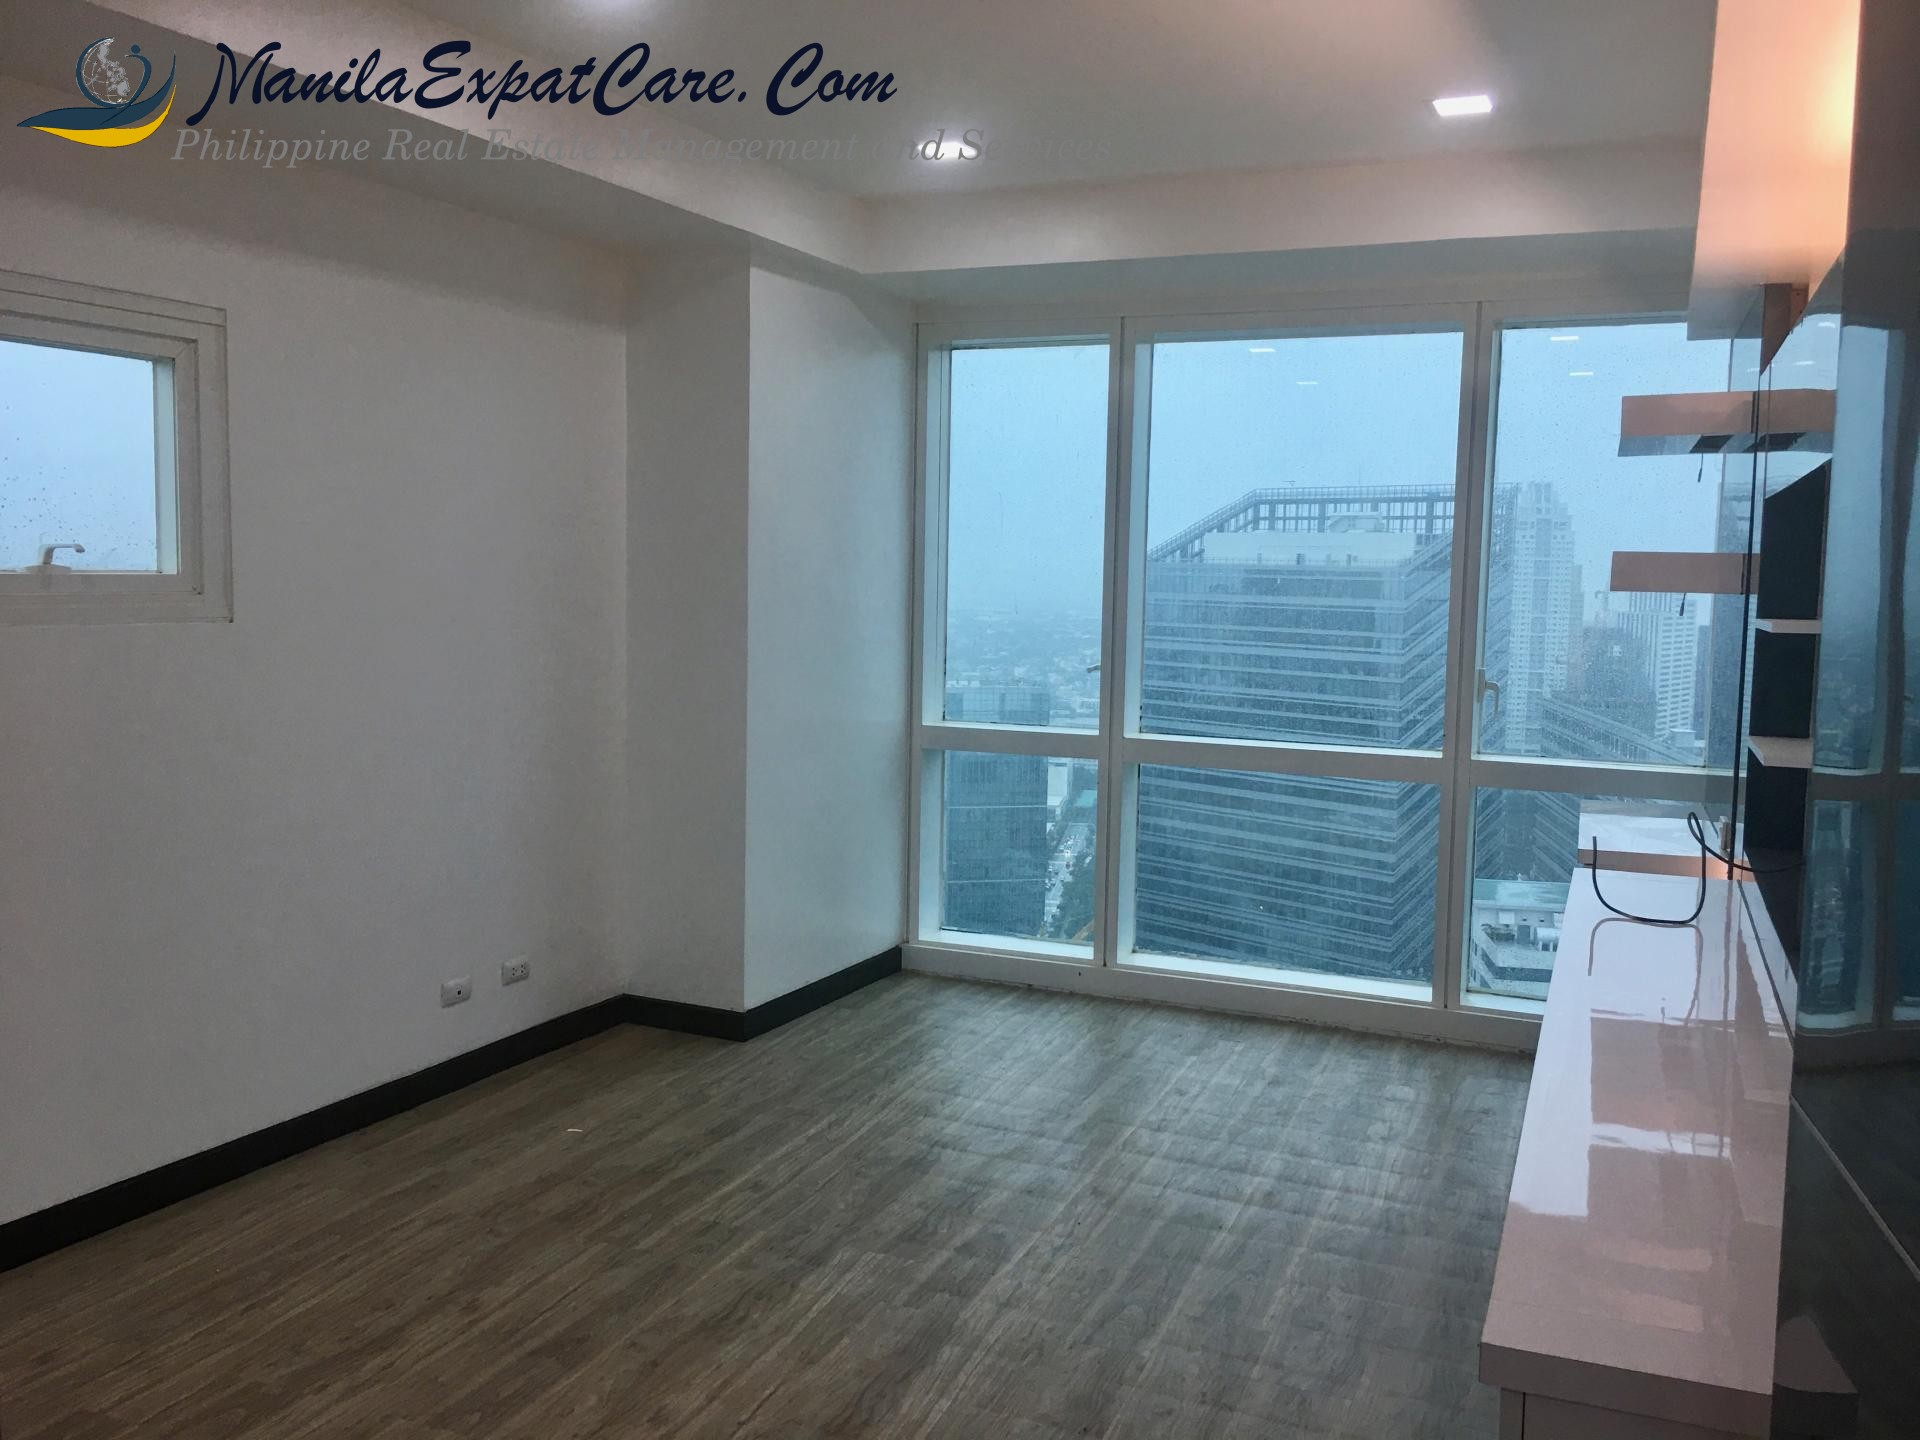 3 Bedrooms for Sale in 8 Forbestown Road, BGC facing Golf course view